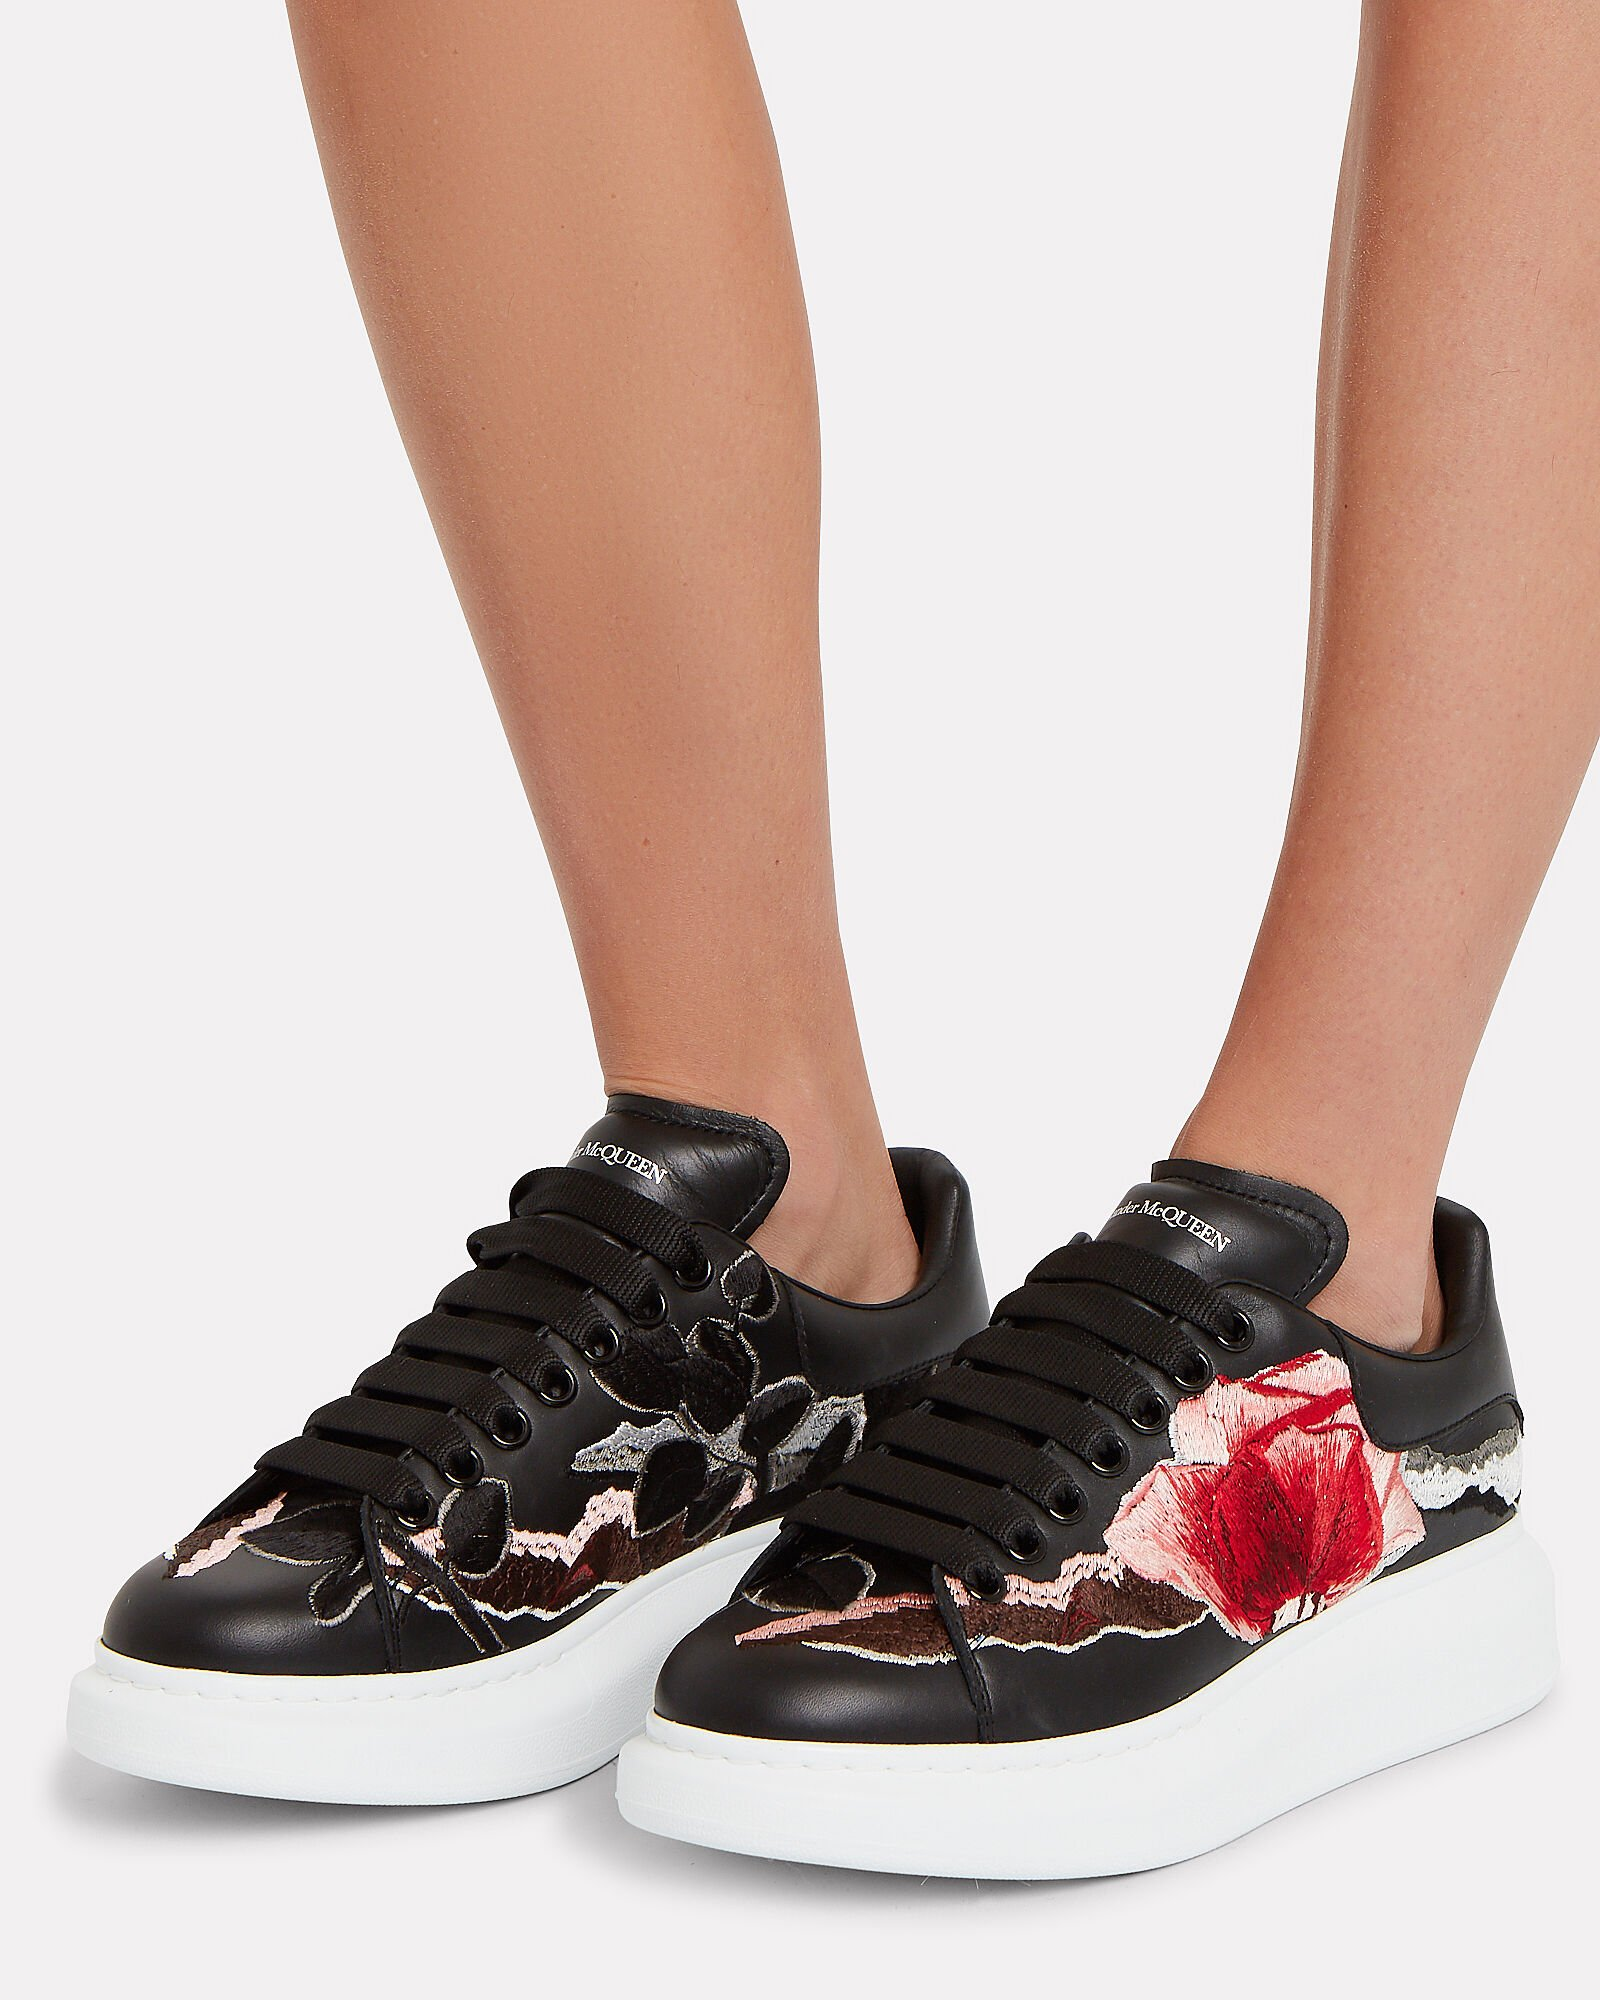 Floral Embroidered Leather Sneakers, BLACK/FLORAL, hi-res